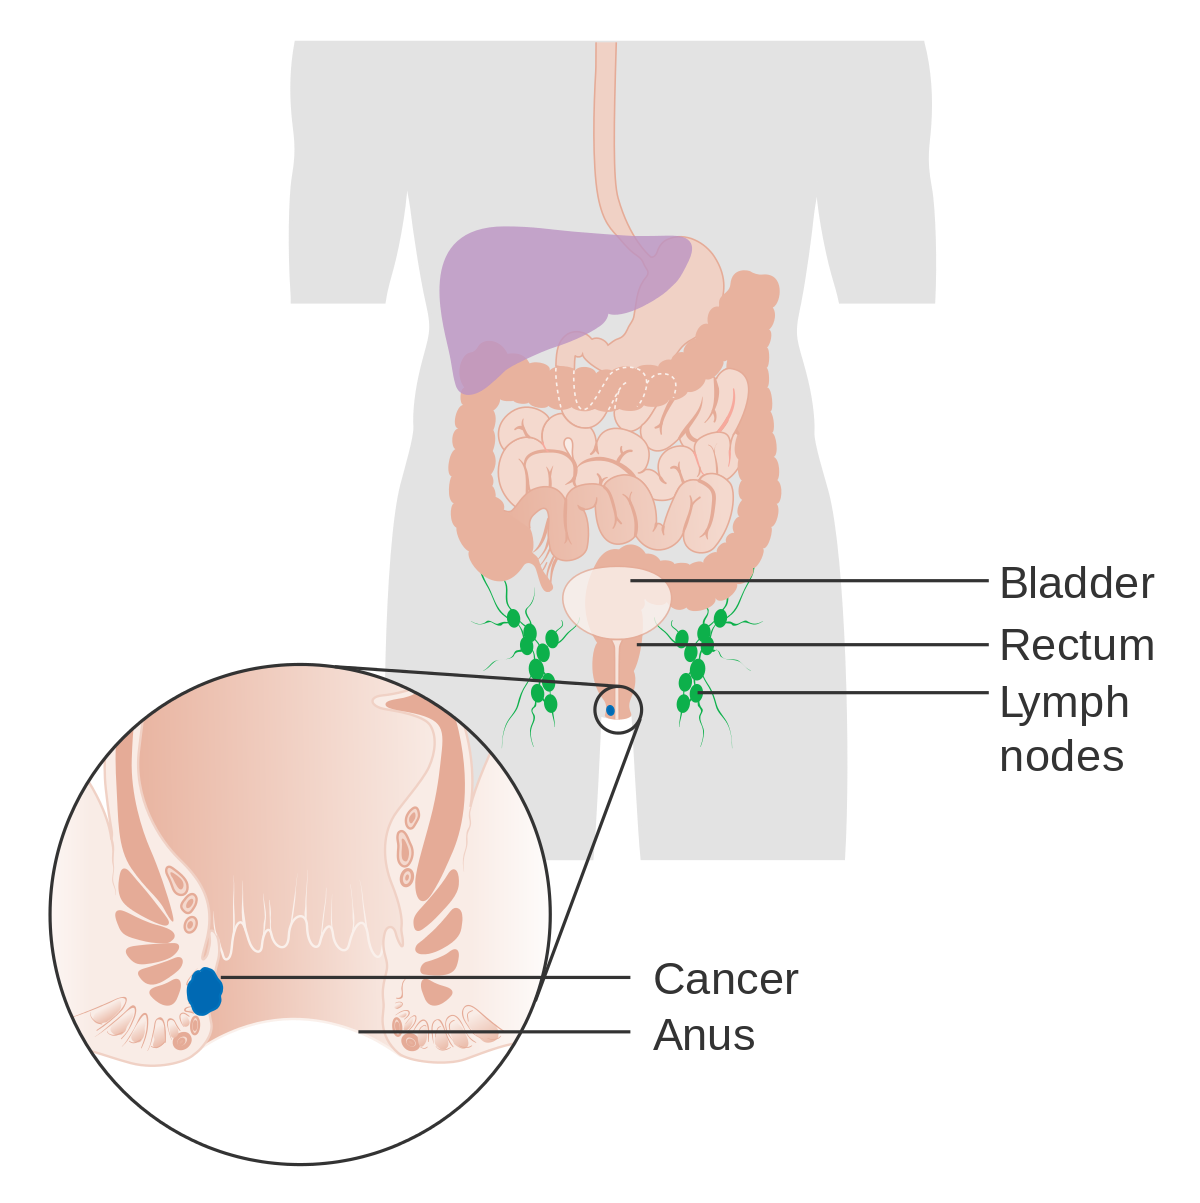 cancer pancreatic head